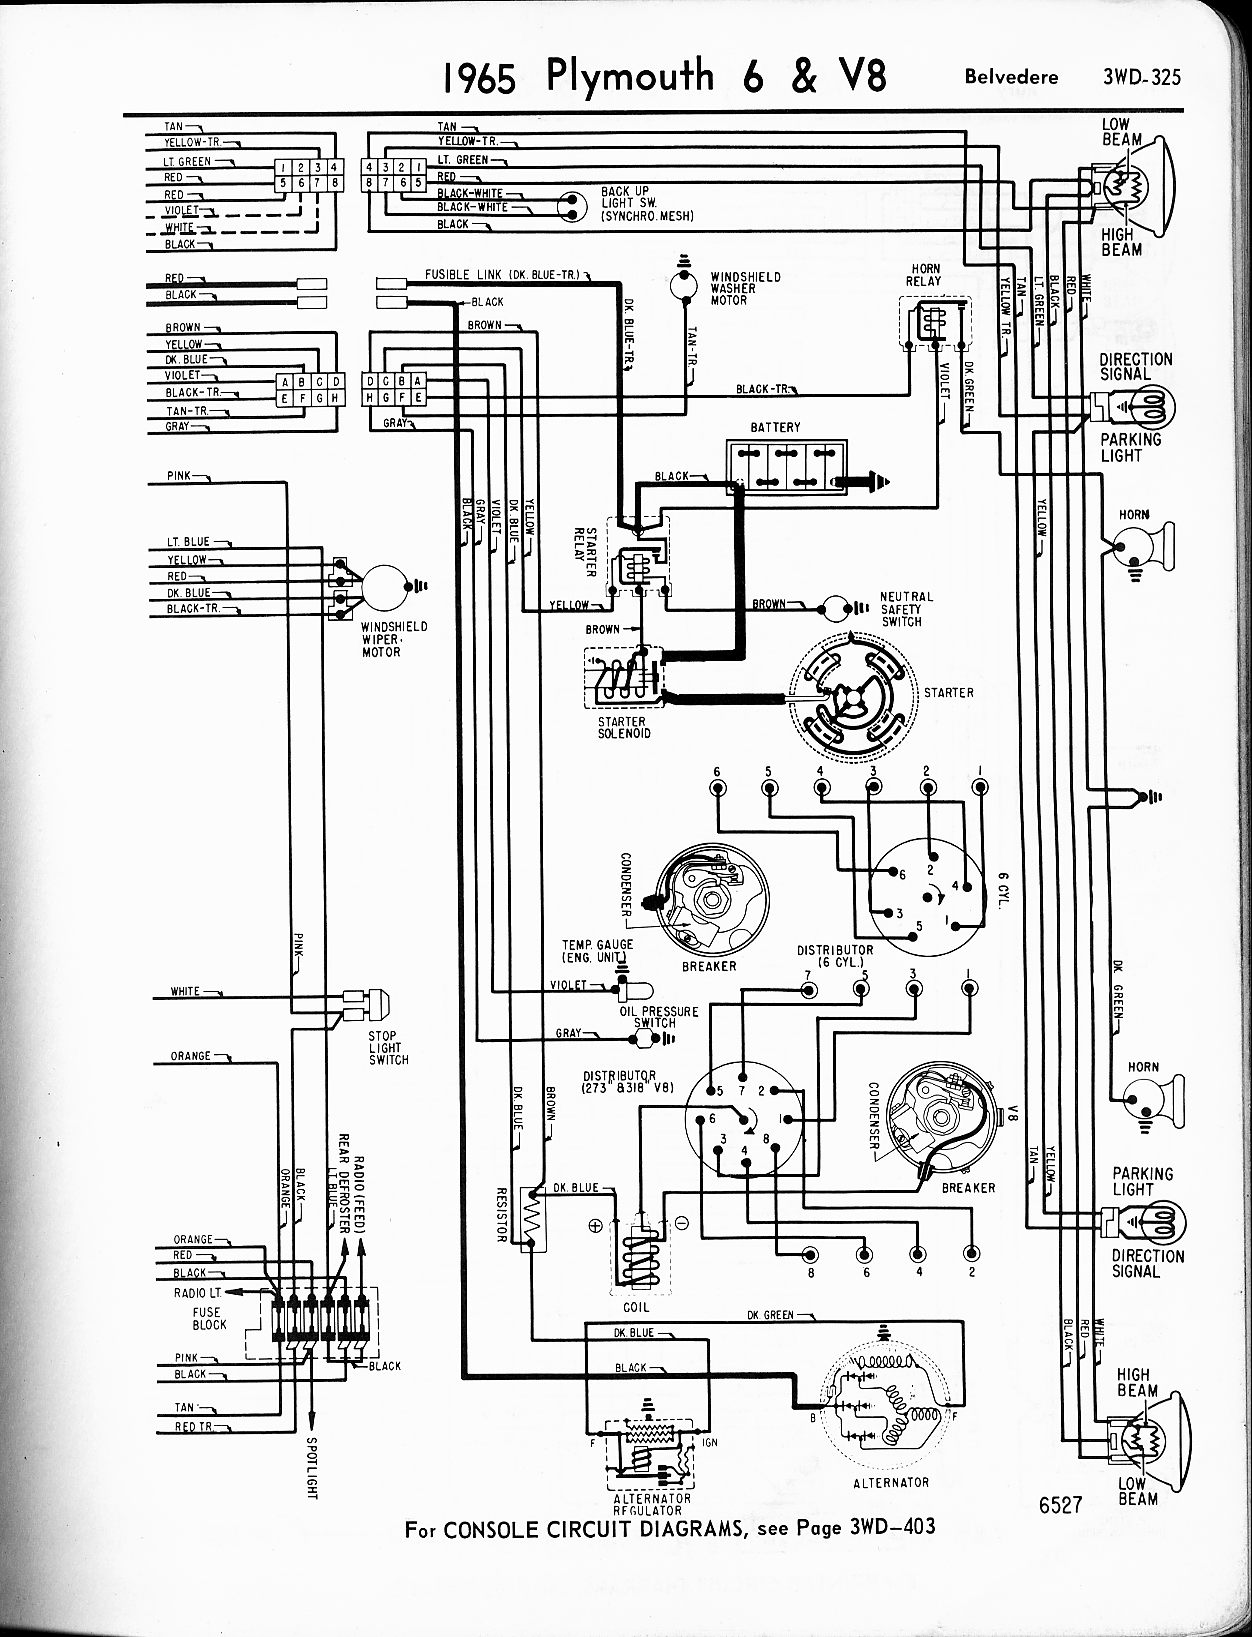 1956 - 1965 Plymouth Wiring - The Old Car Manual Project Jeep Turn Signal Wiring Diagram on ford 8n wiring diagram, 1960 willys l6-226 12 volt wiring diagram, 1979 jeep wiring diagram, jeep cj5 wiring-diagram, 1986 jeep wiring diagram, simple chopper wiring diagram, 86 cj7 distributor wiring diagram, 2014 jeep wrangler wiring diagram, 1984 jeep cj wiring diagram, 2009 dodge 4500 pto wiring diagram,